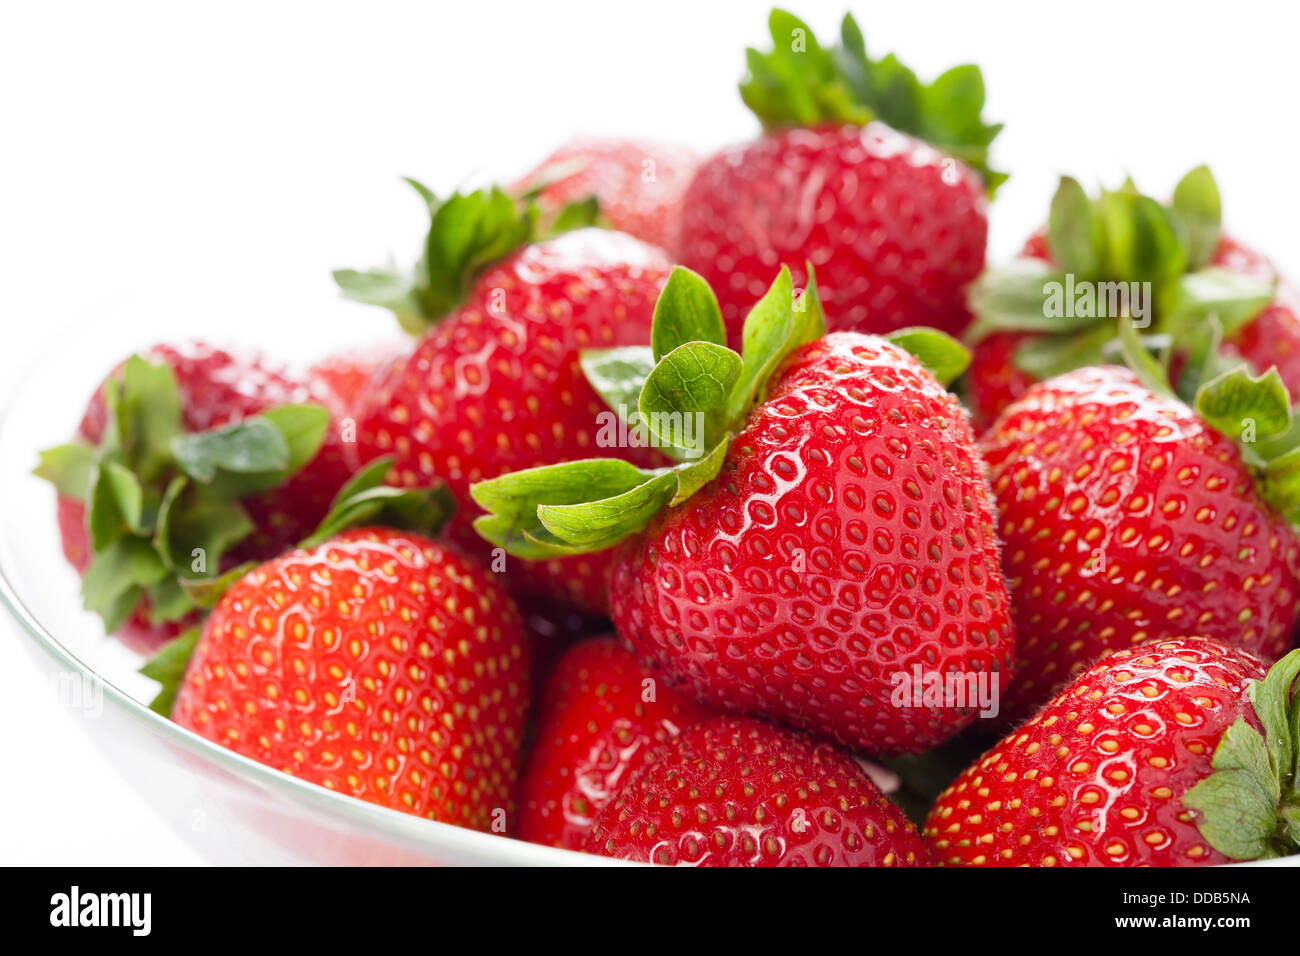 Rip strawberry on white background - Stock Image